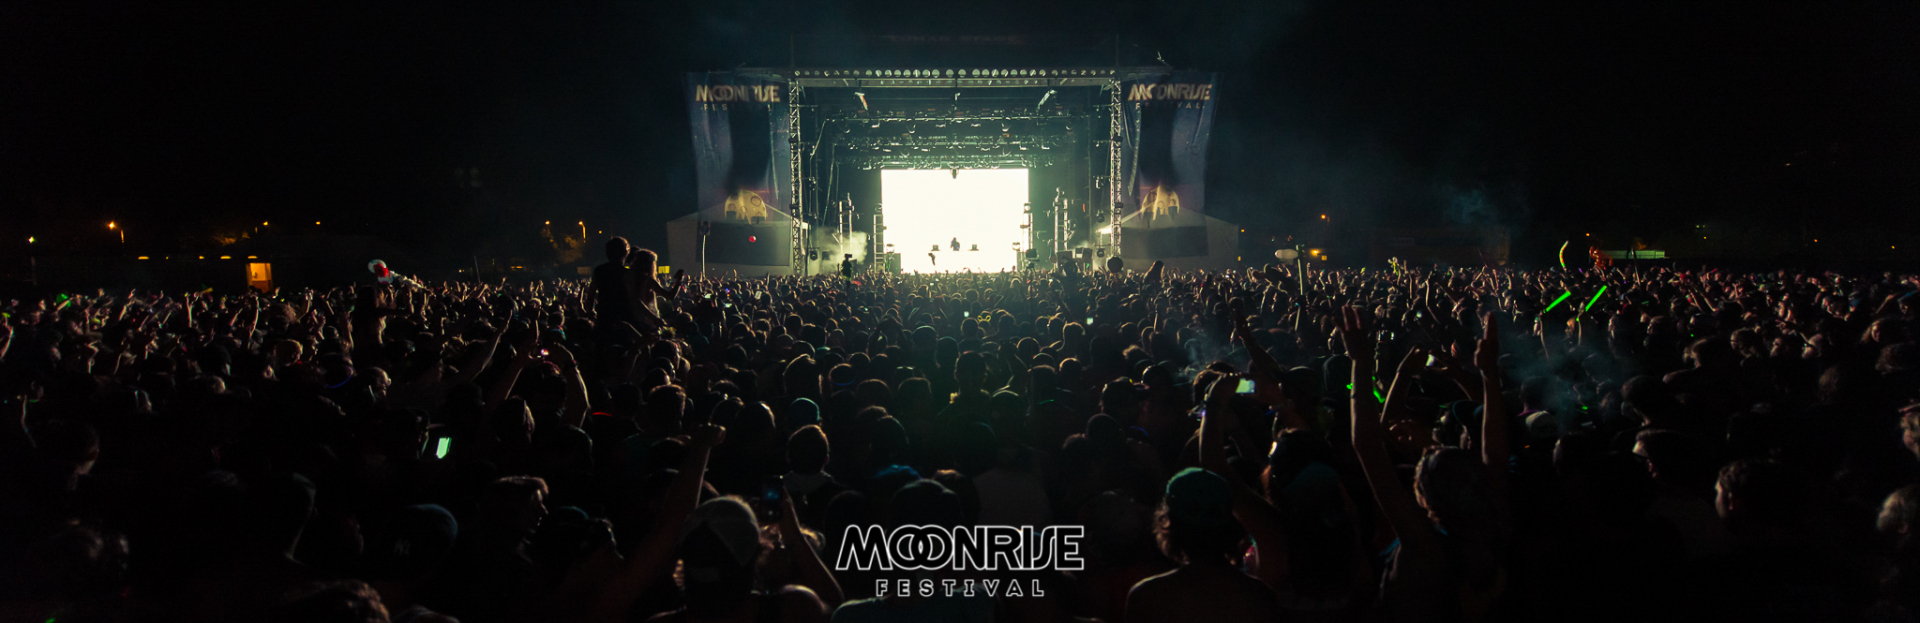 Moonrise_day2-115